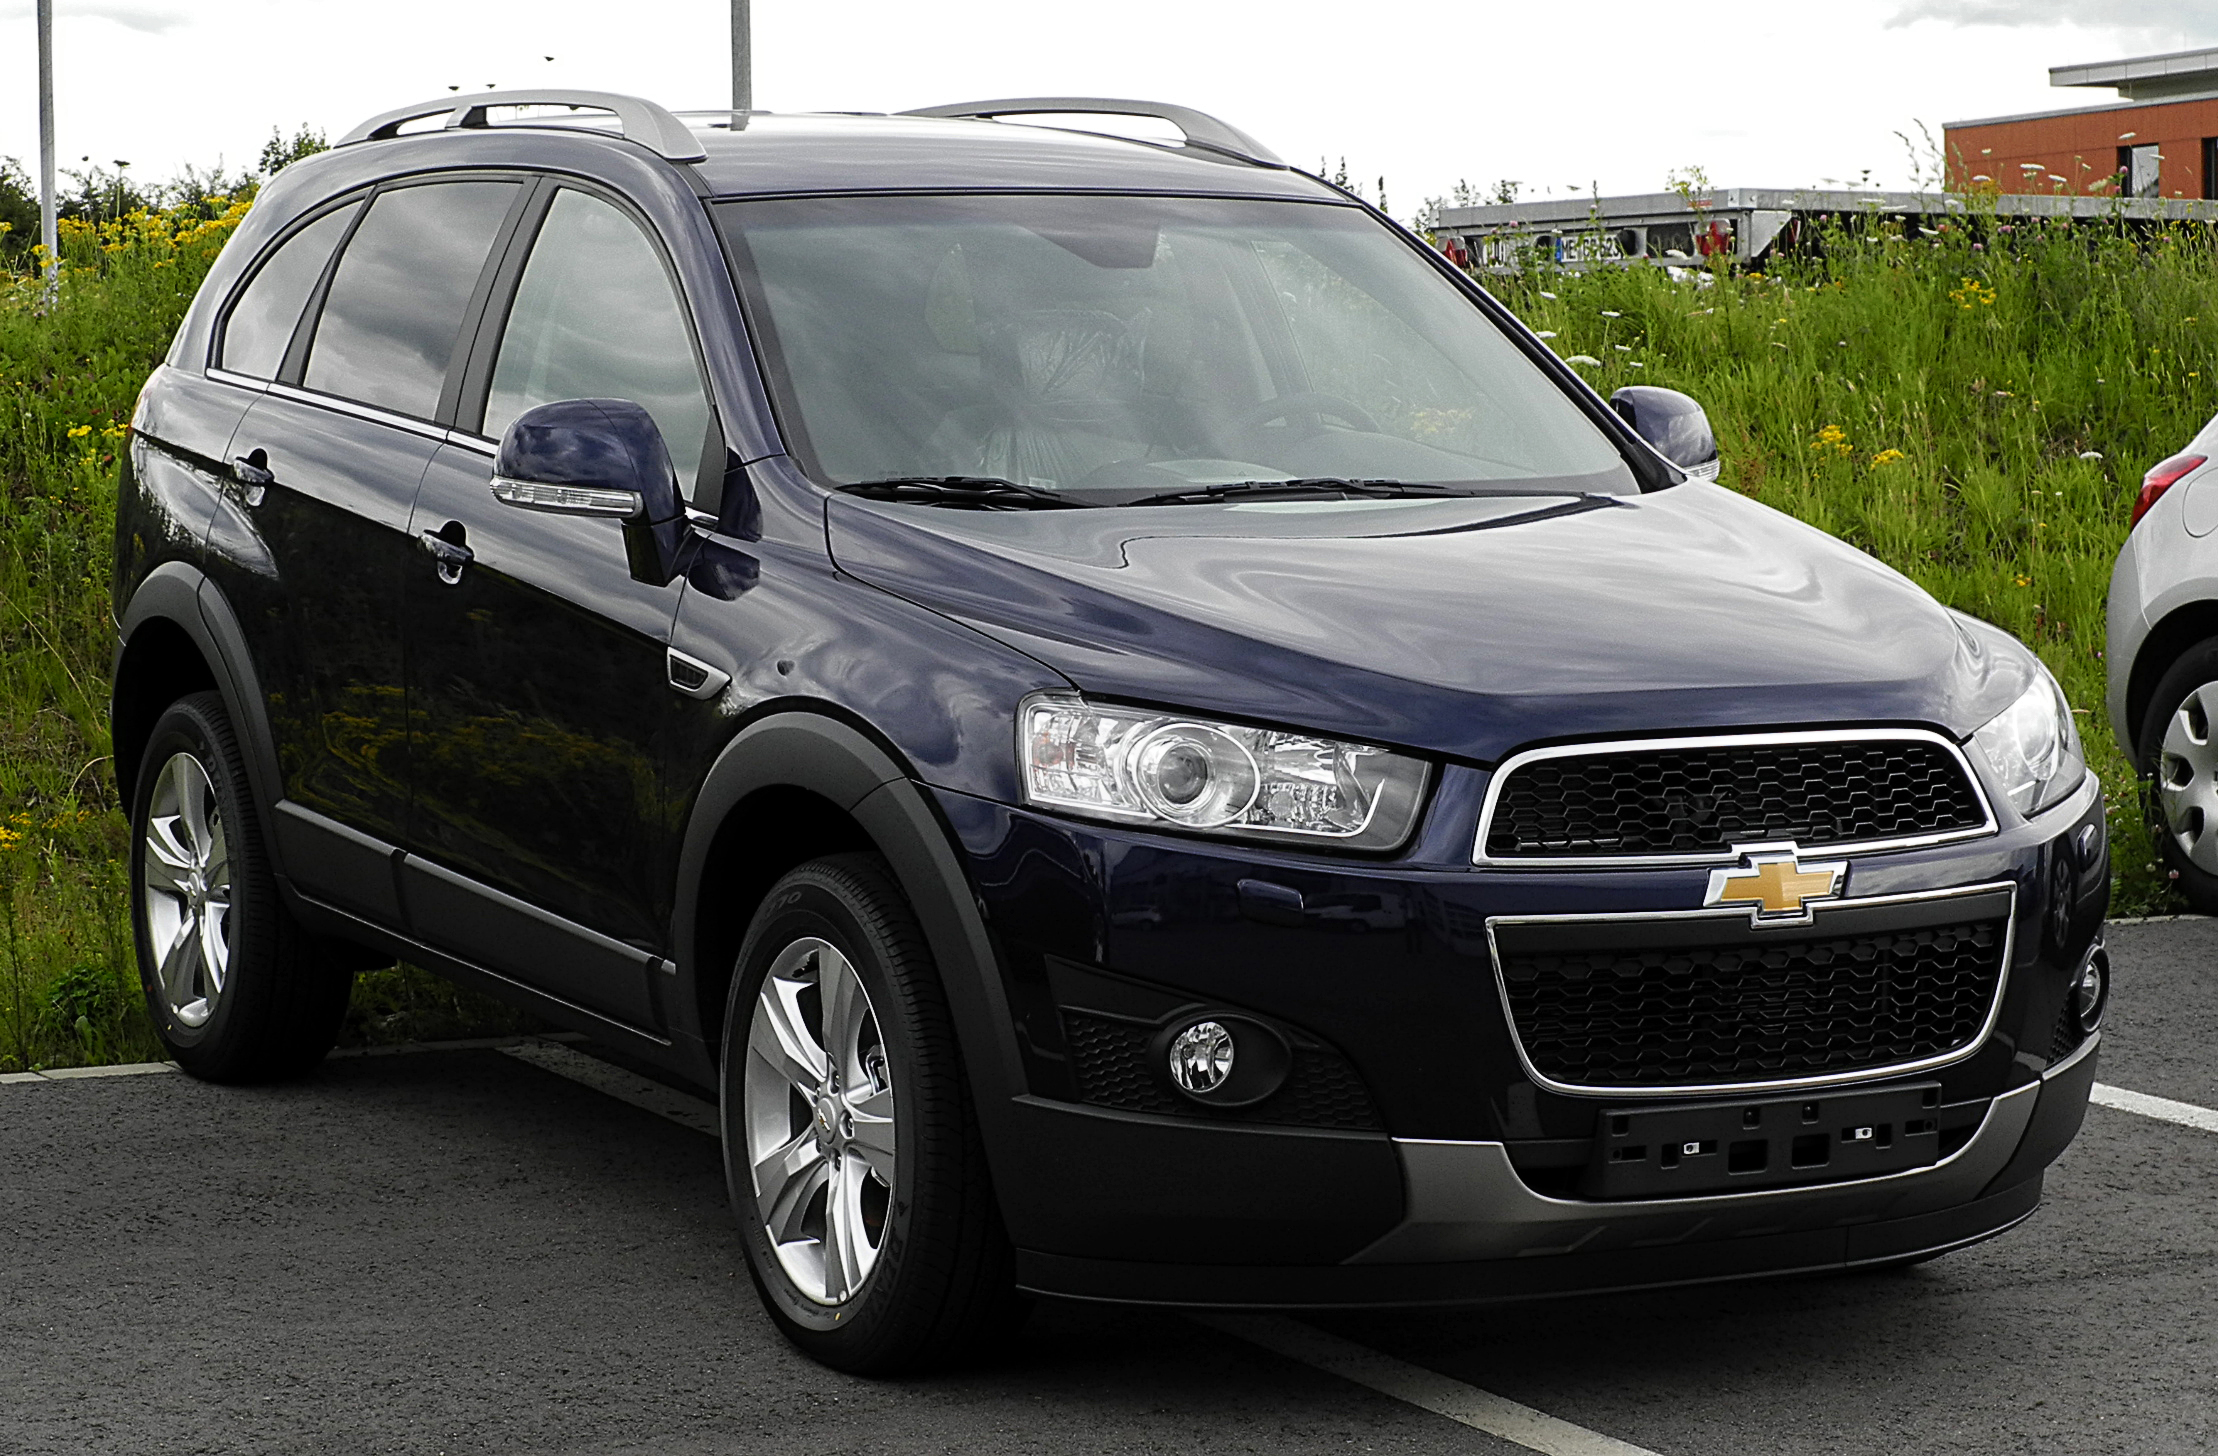 2011 Chevrolet Captiva Pictures Information And Specs